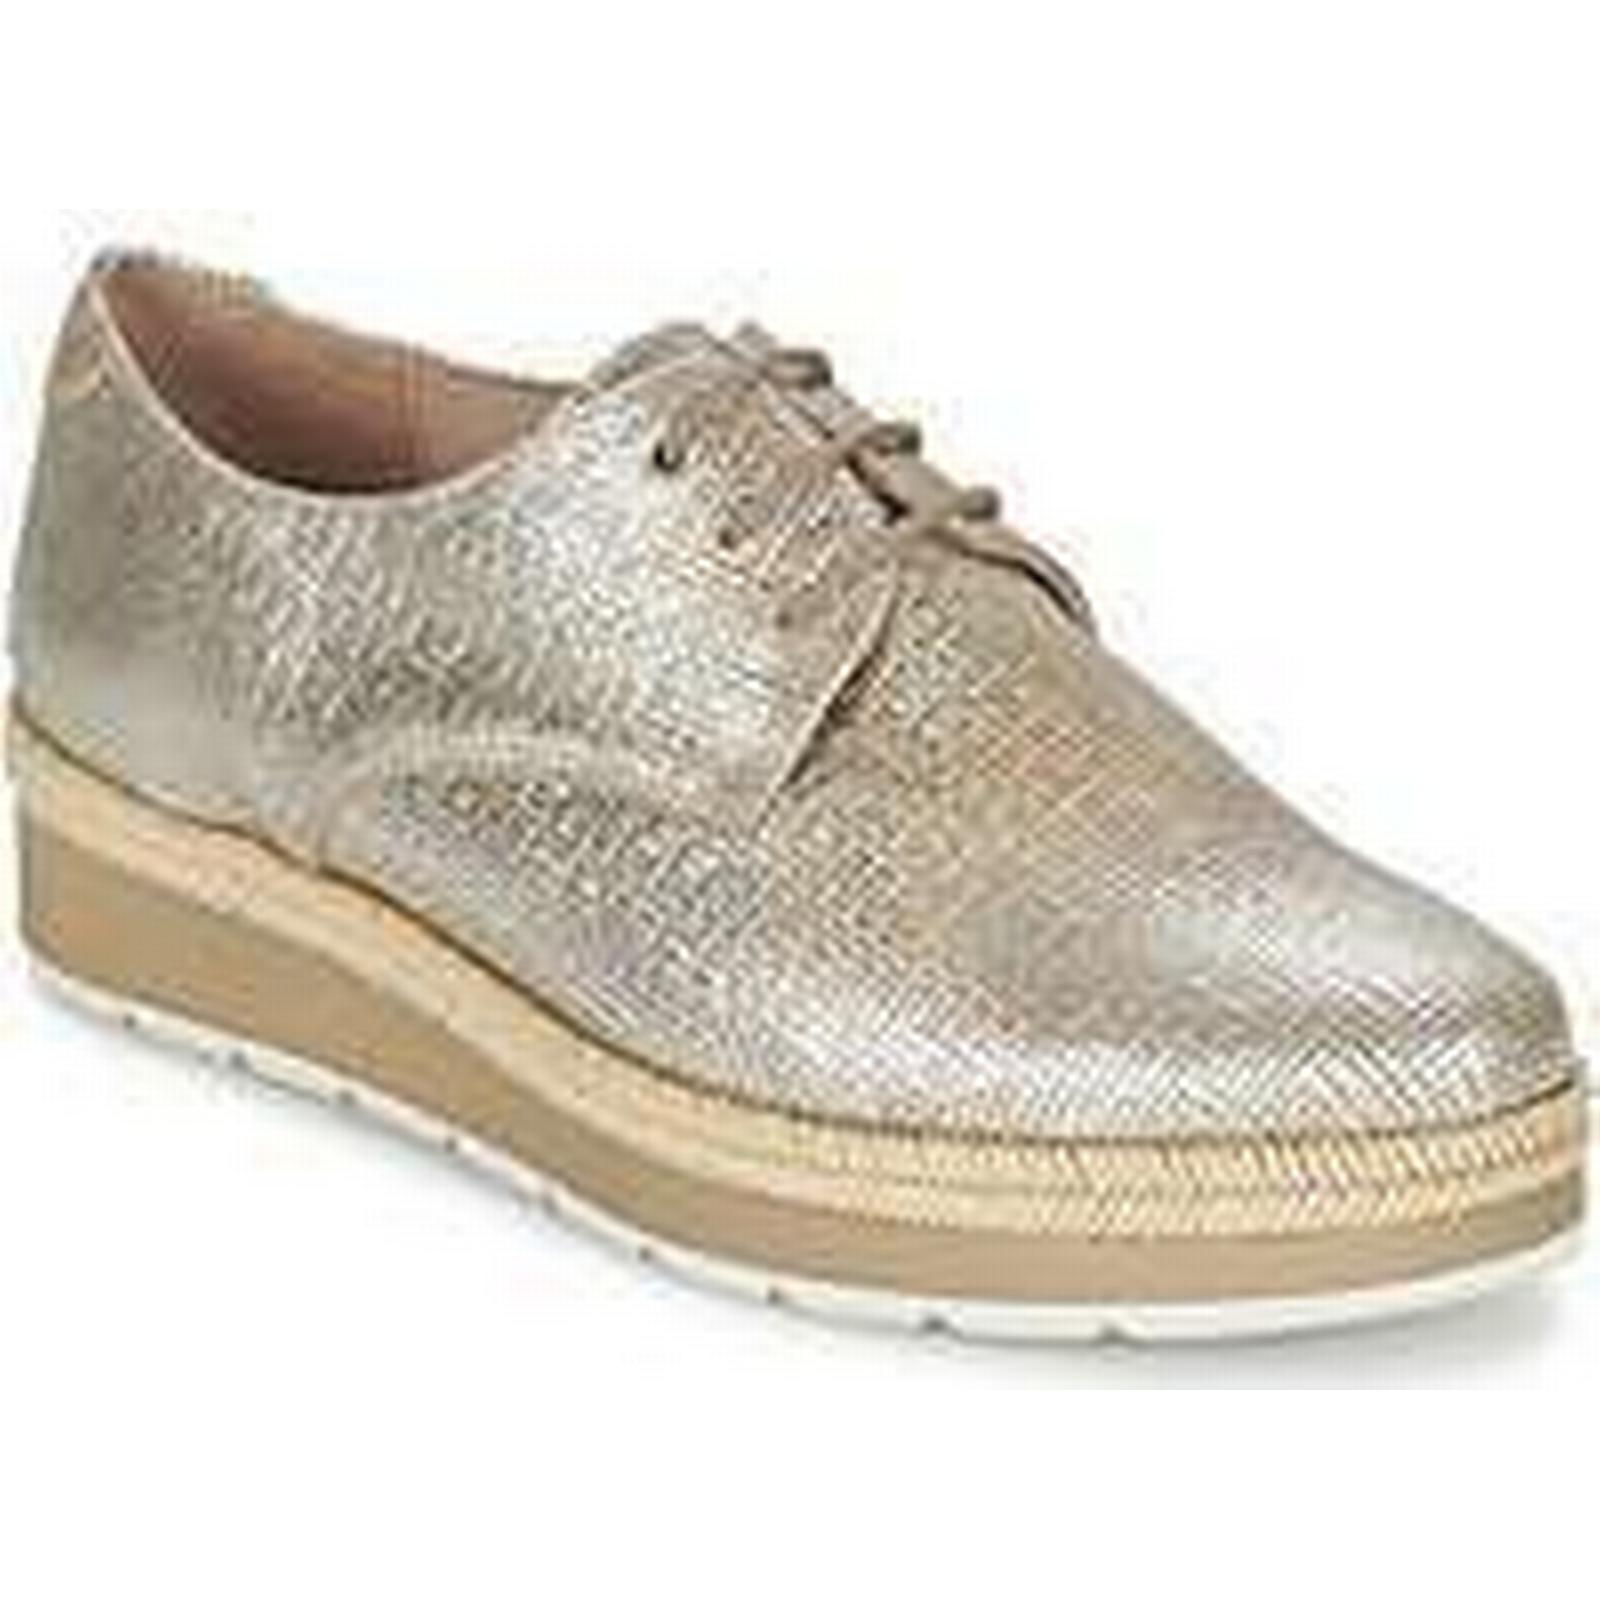 Spartoo.co.uk Hispanitas DATURAL (Trainers) women's Shoes (Trainers) DATURAL in Beige 0c5bdf